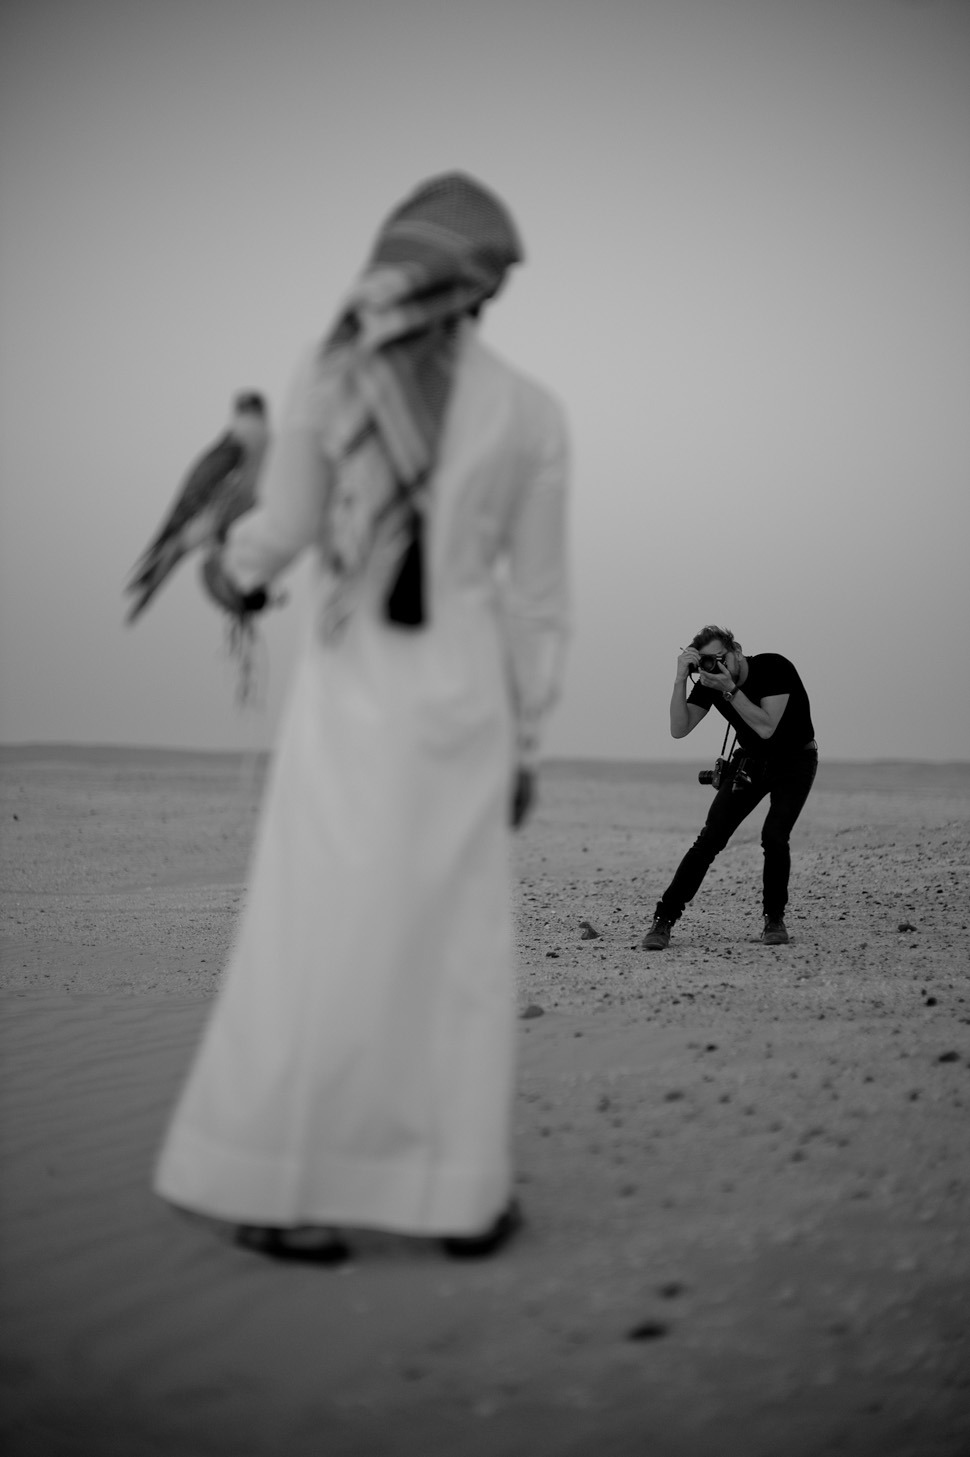 Thorsten Overgaard by Khalid Bin Hamad AL-Thani in the desert of Qatar. © 2013 Khalid Bin Hamad AL-Thani. All rights reserved. Leica M9 Hermes with Leica 50mm Noctilux-M ASPH f/0.95To read more, touch the image …